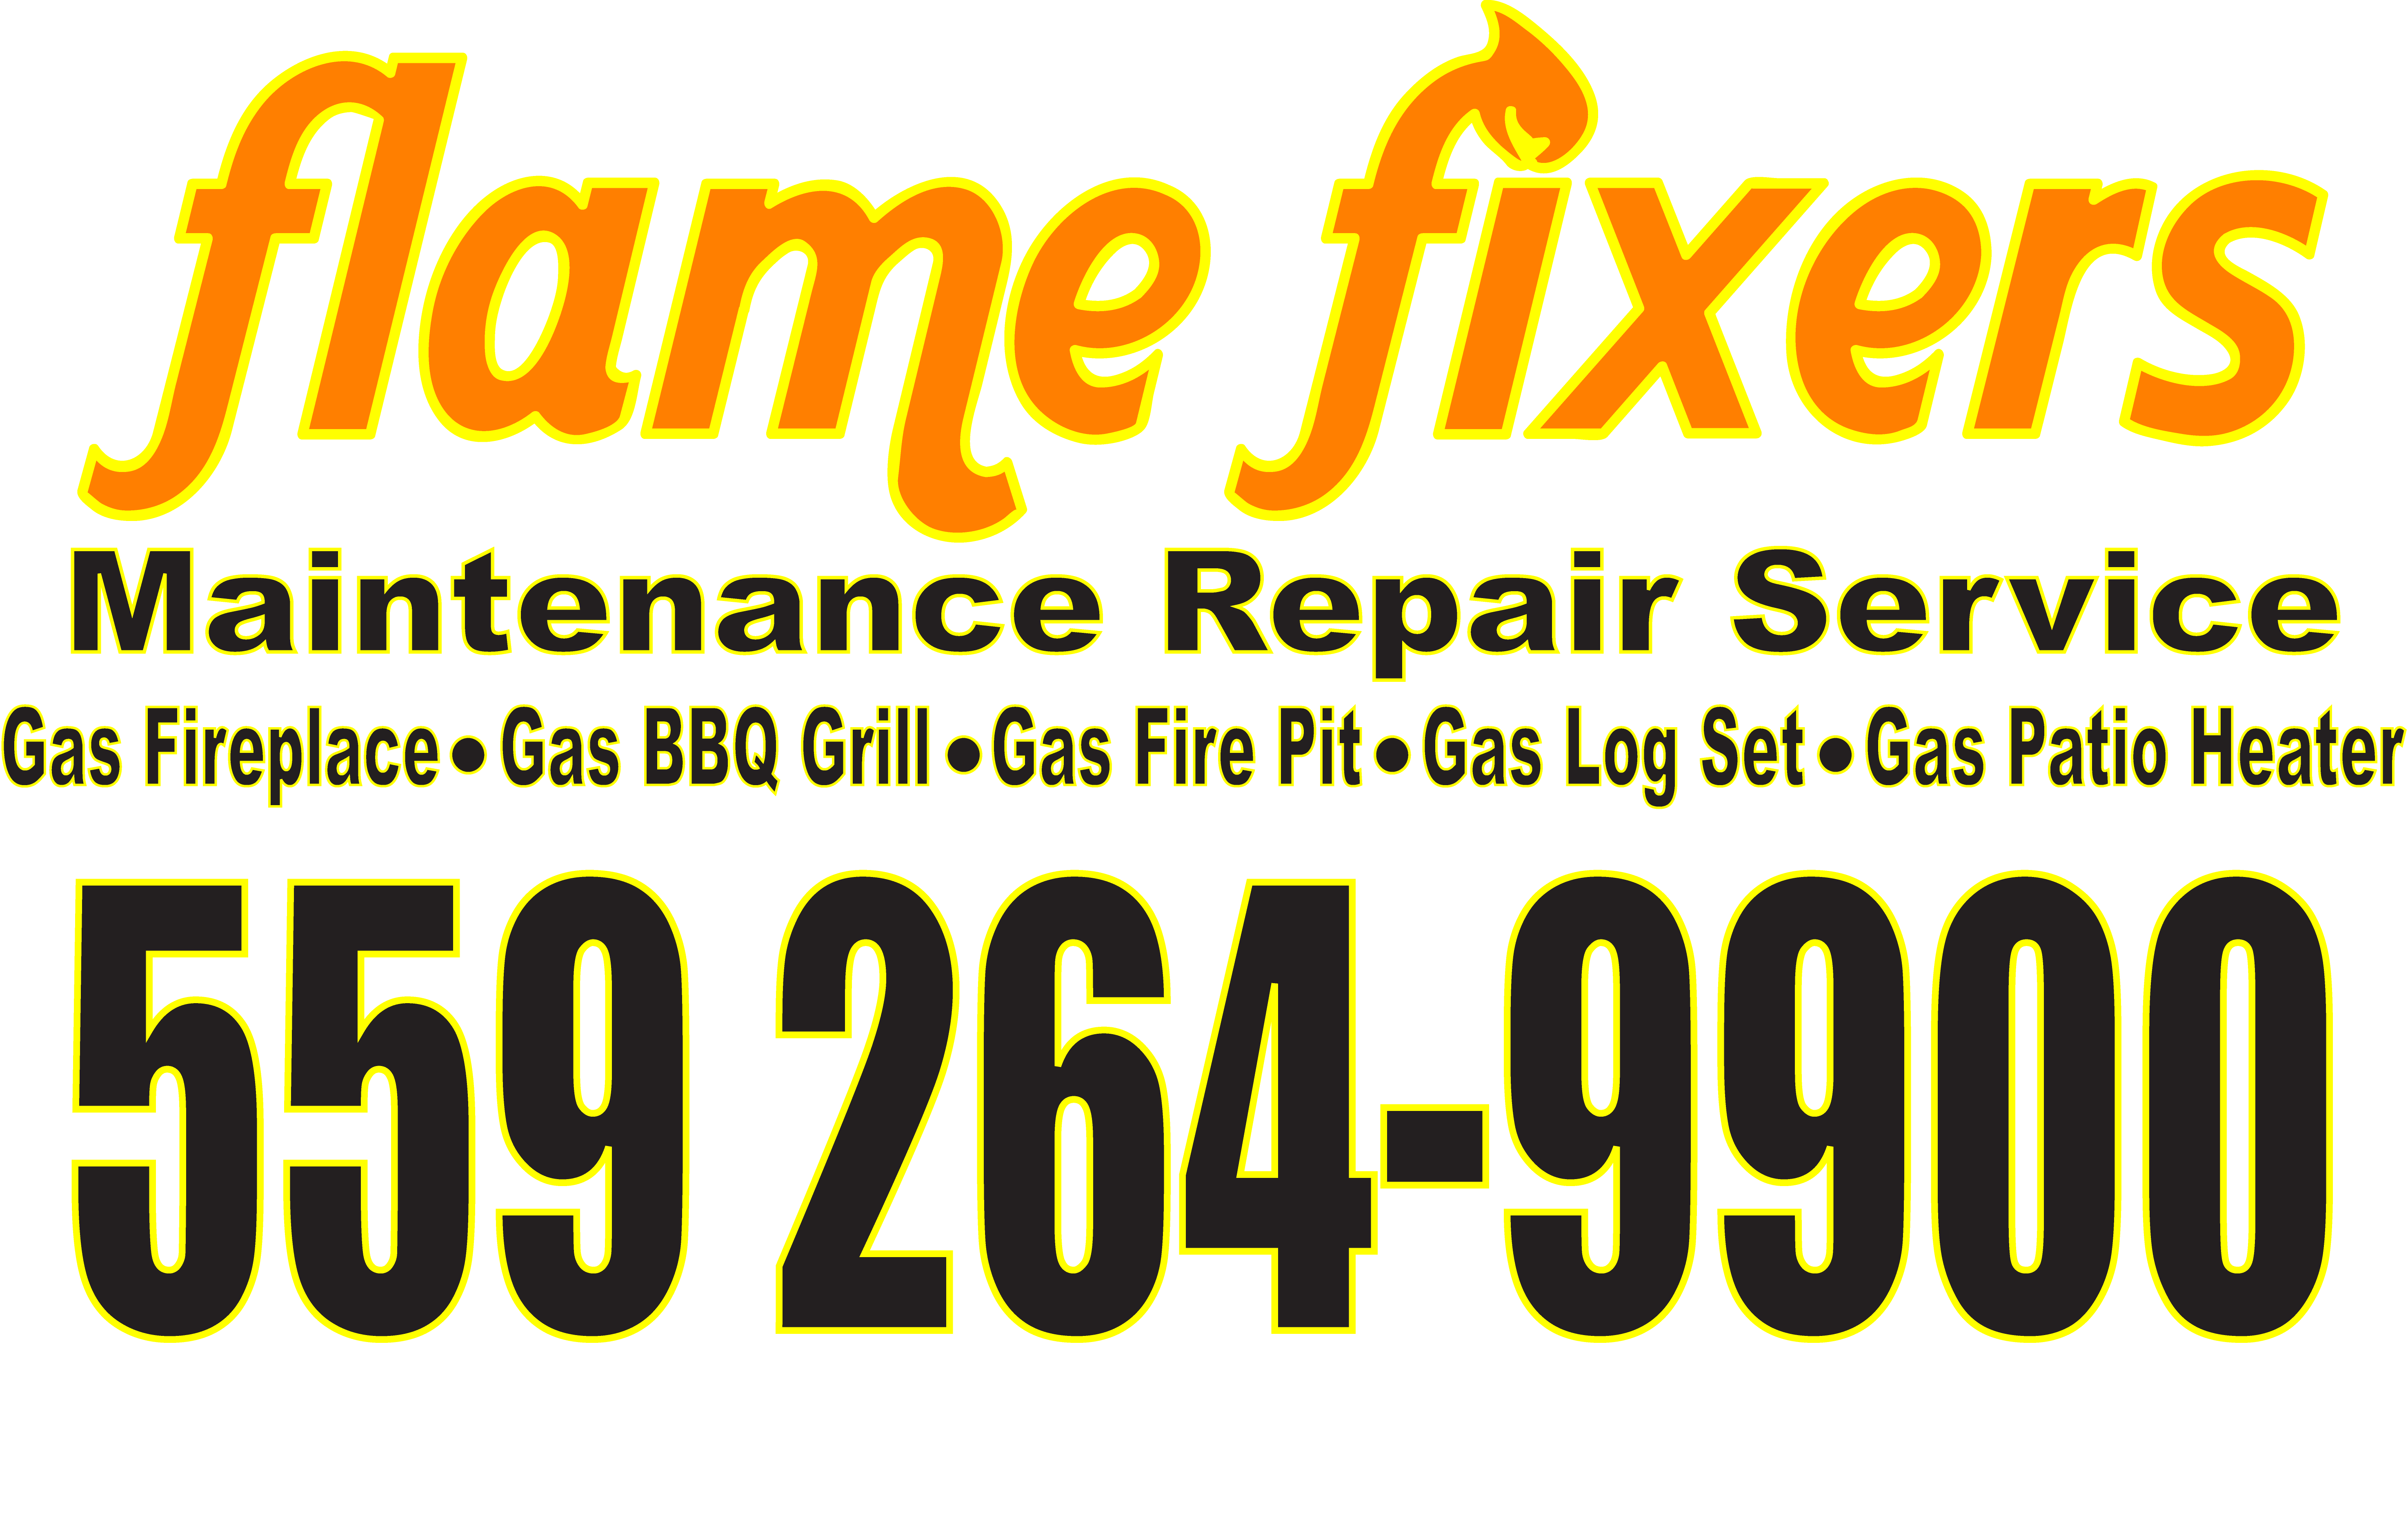 Flame Fixers